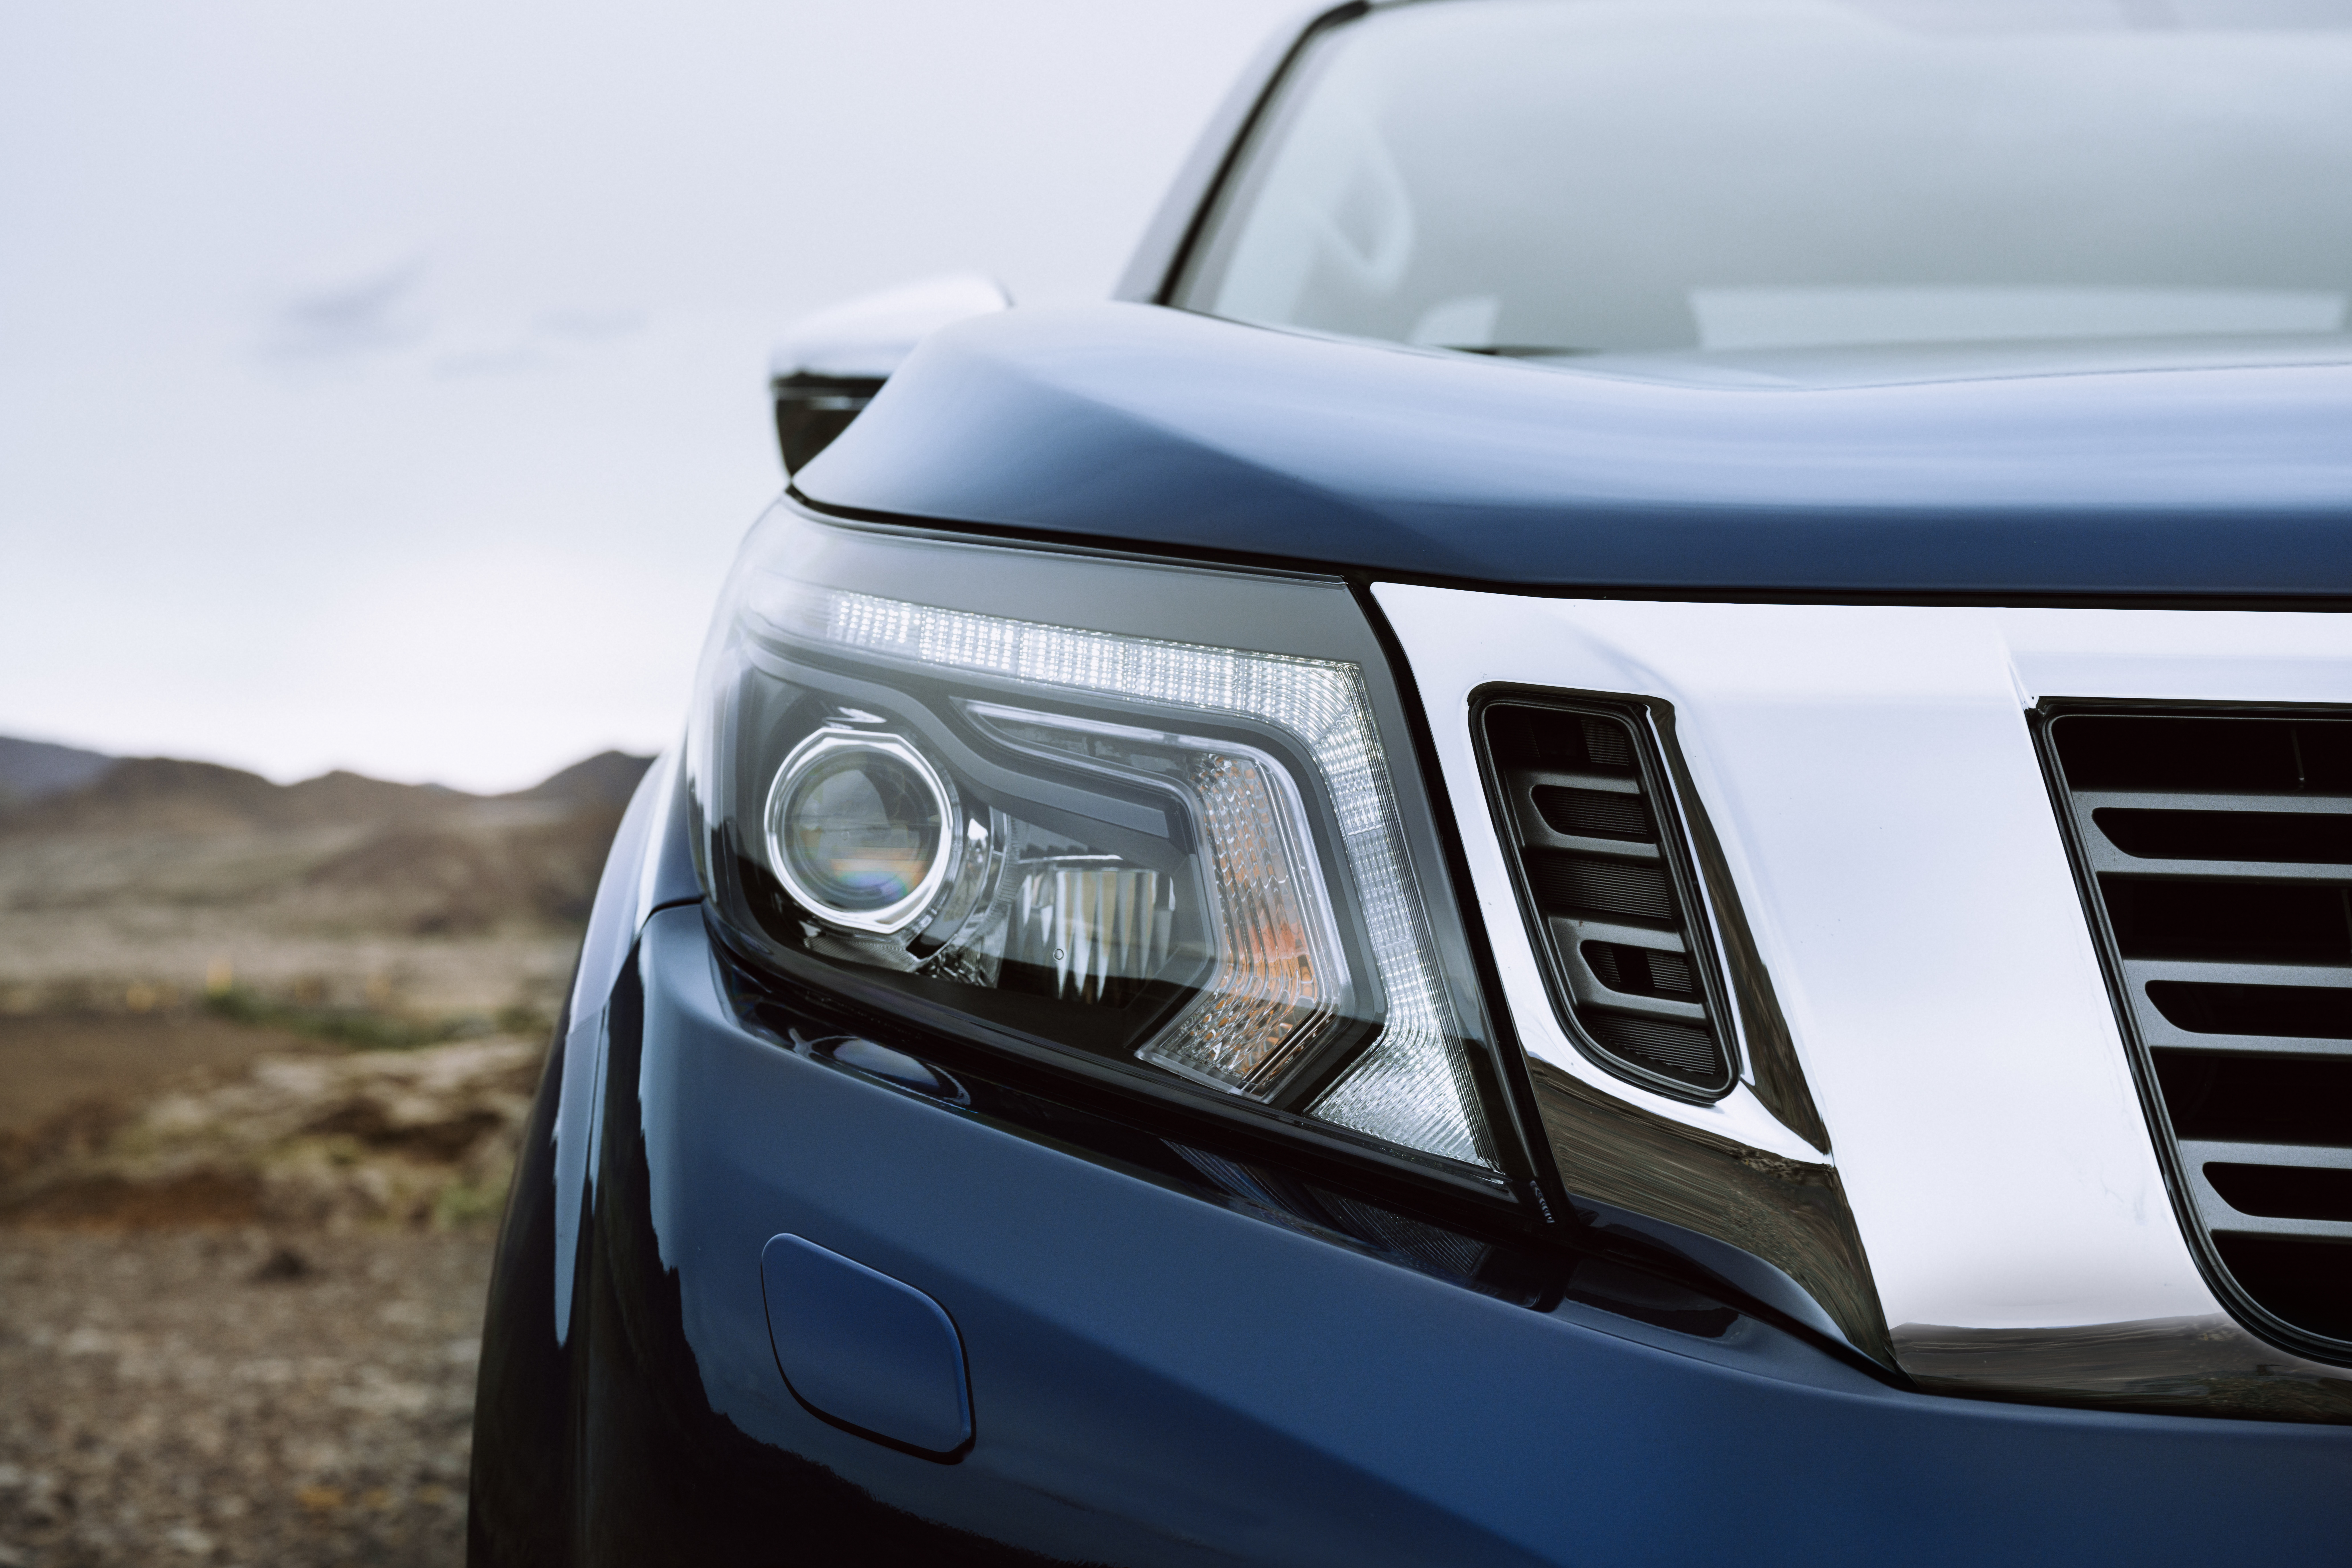 The Navara gets redesigned headlights